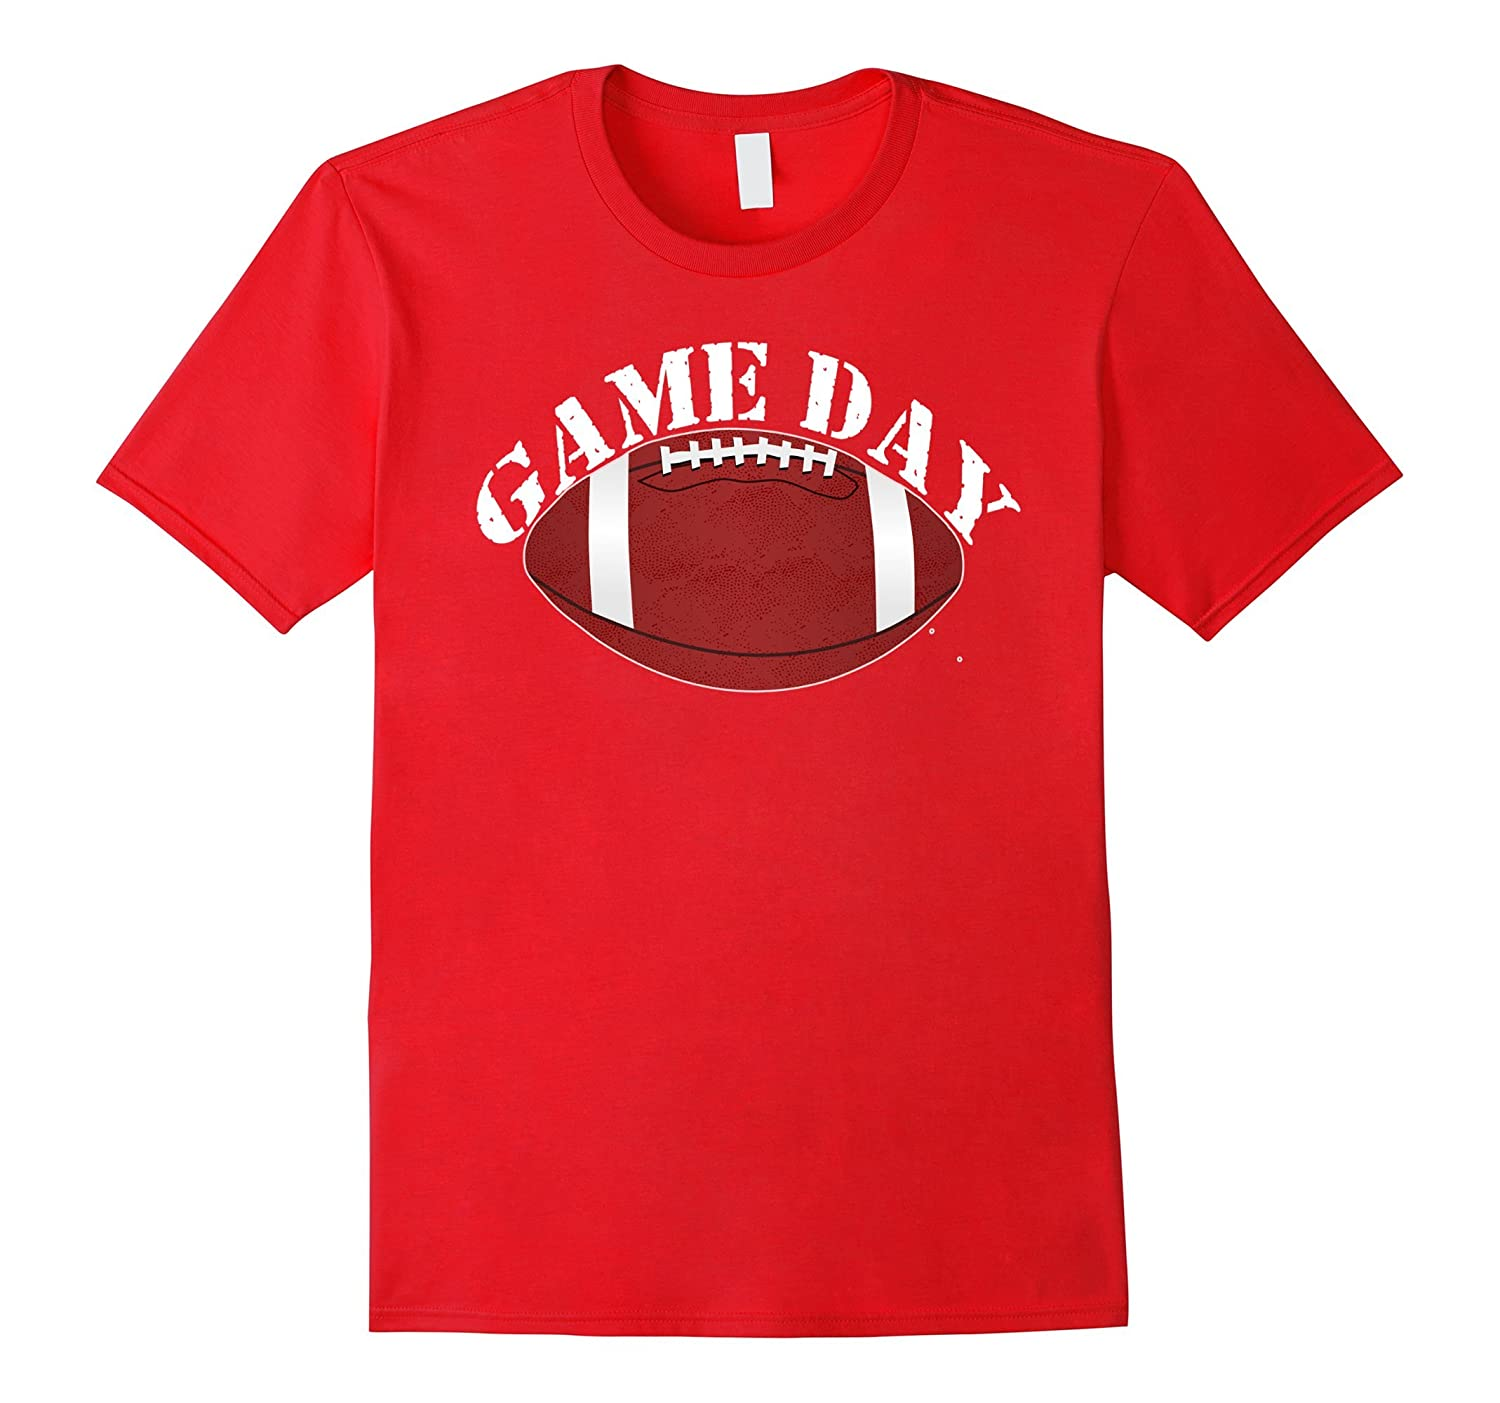 Football Fans T-Shirt For 2017 Season & Playoff Game Day-FL